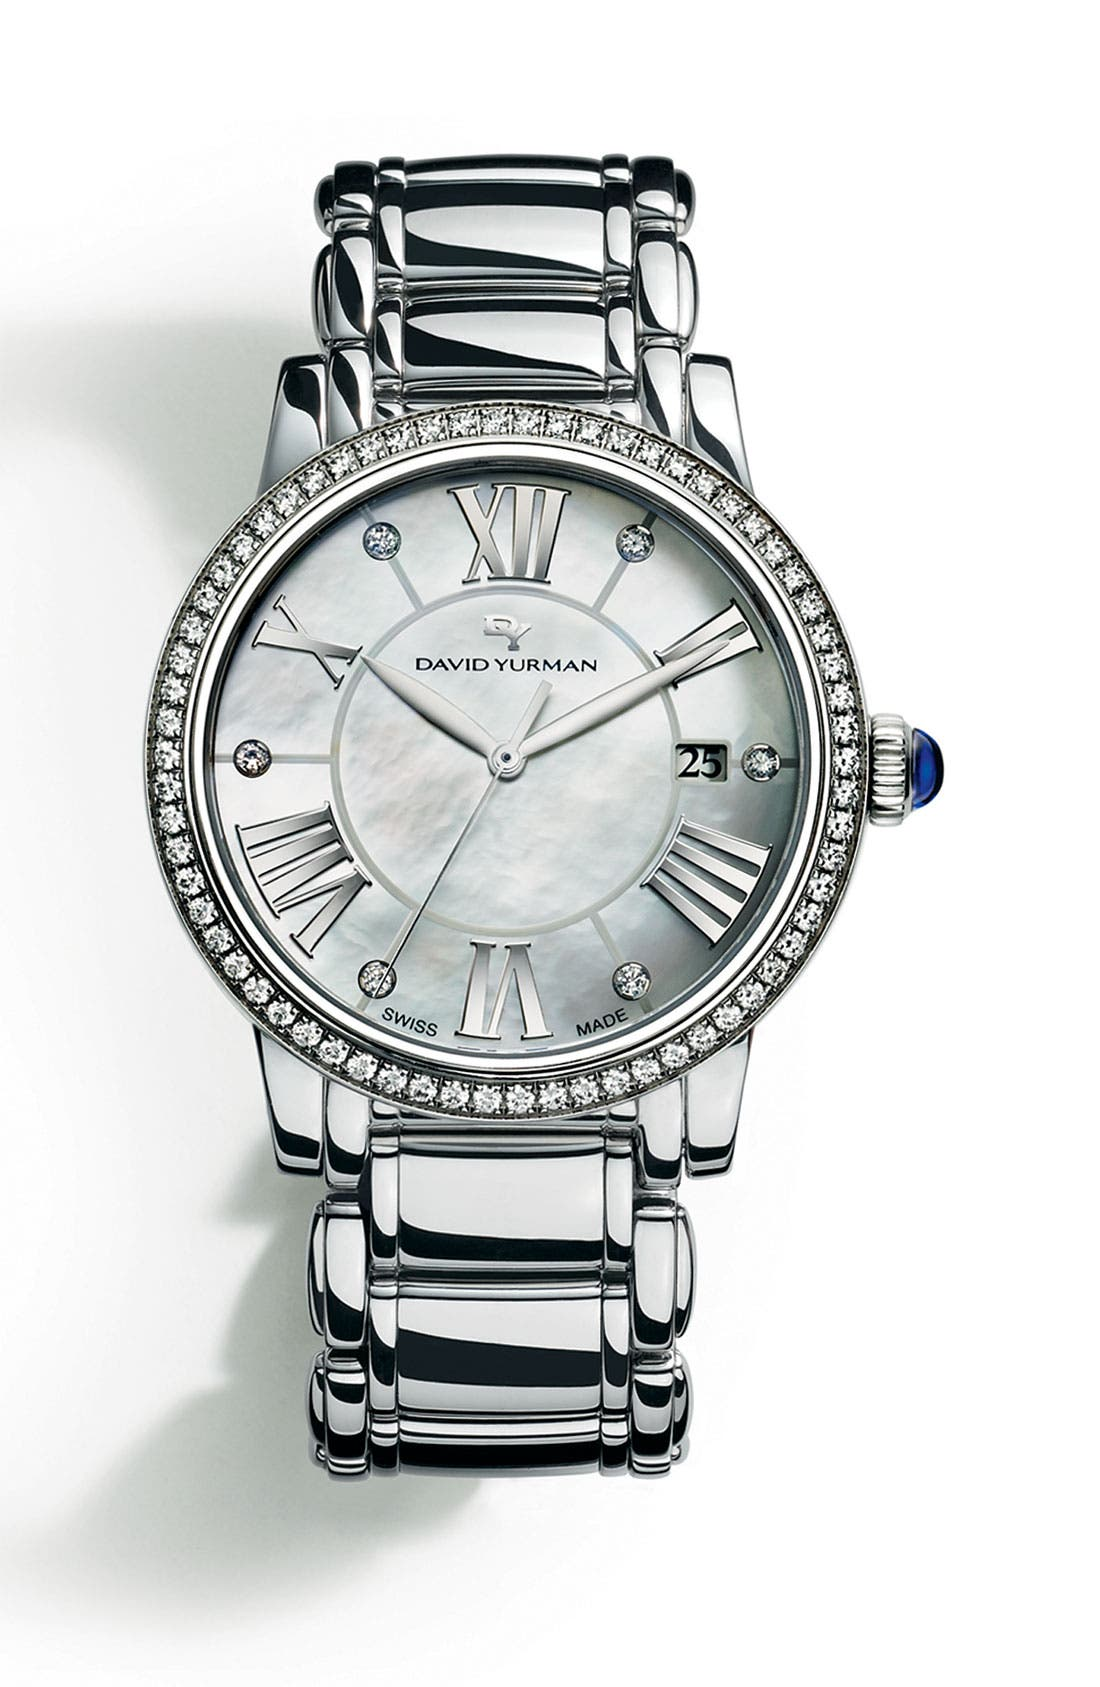 David Yurman 'Classic' 38mm Quartz Watch